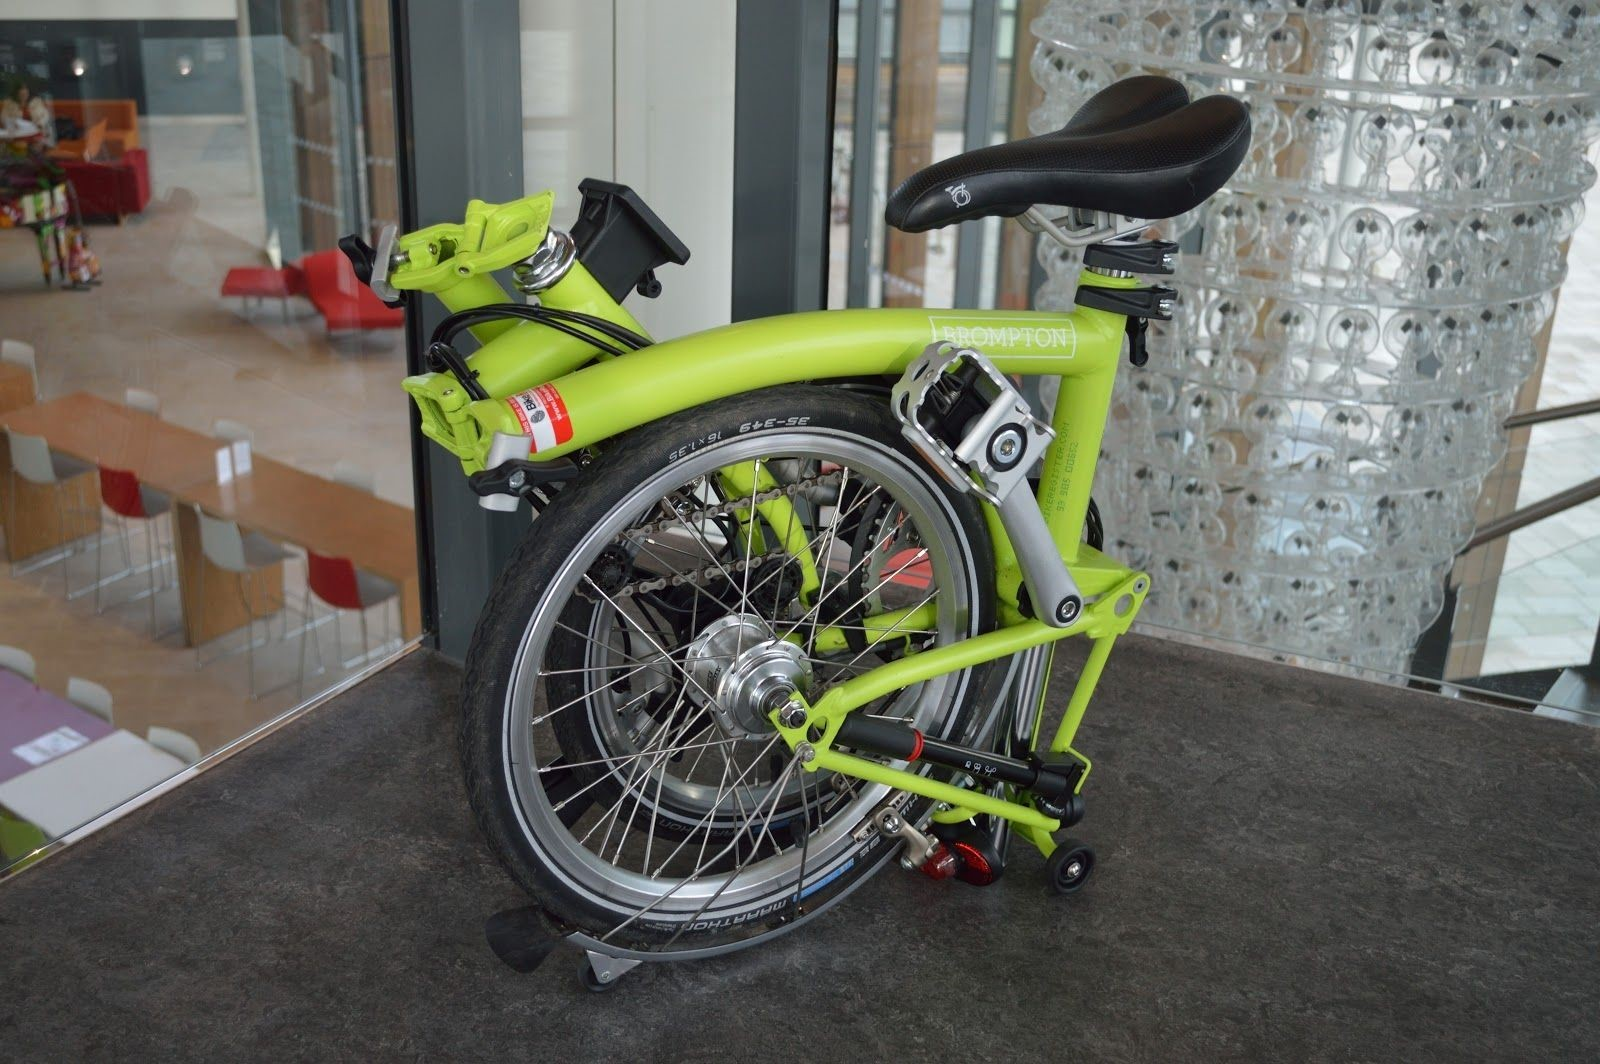 bike like the Brompton or Birdy